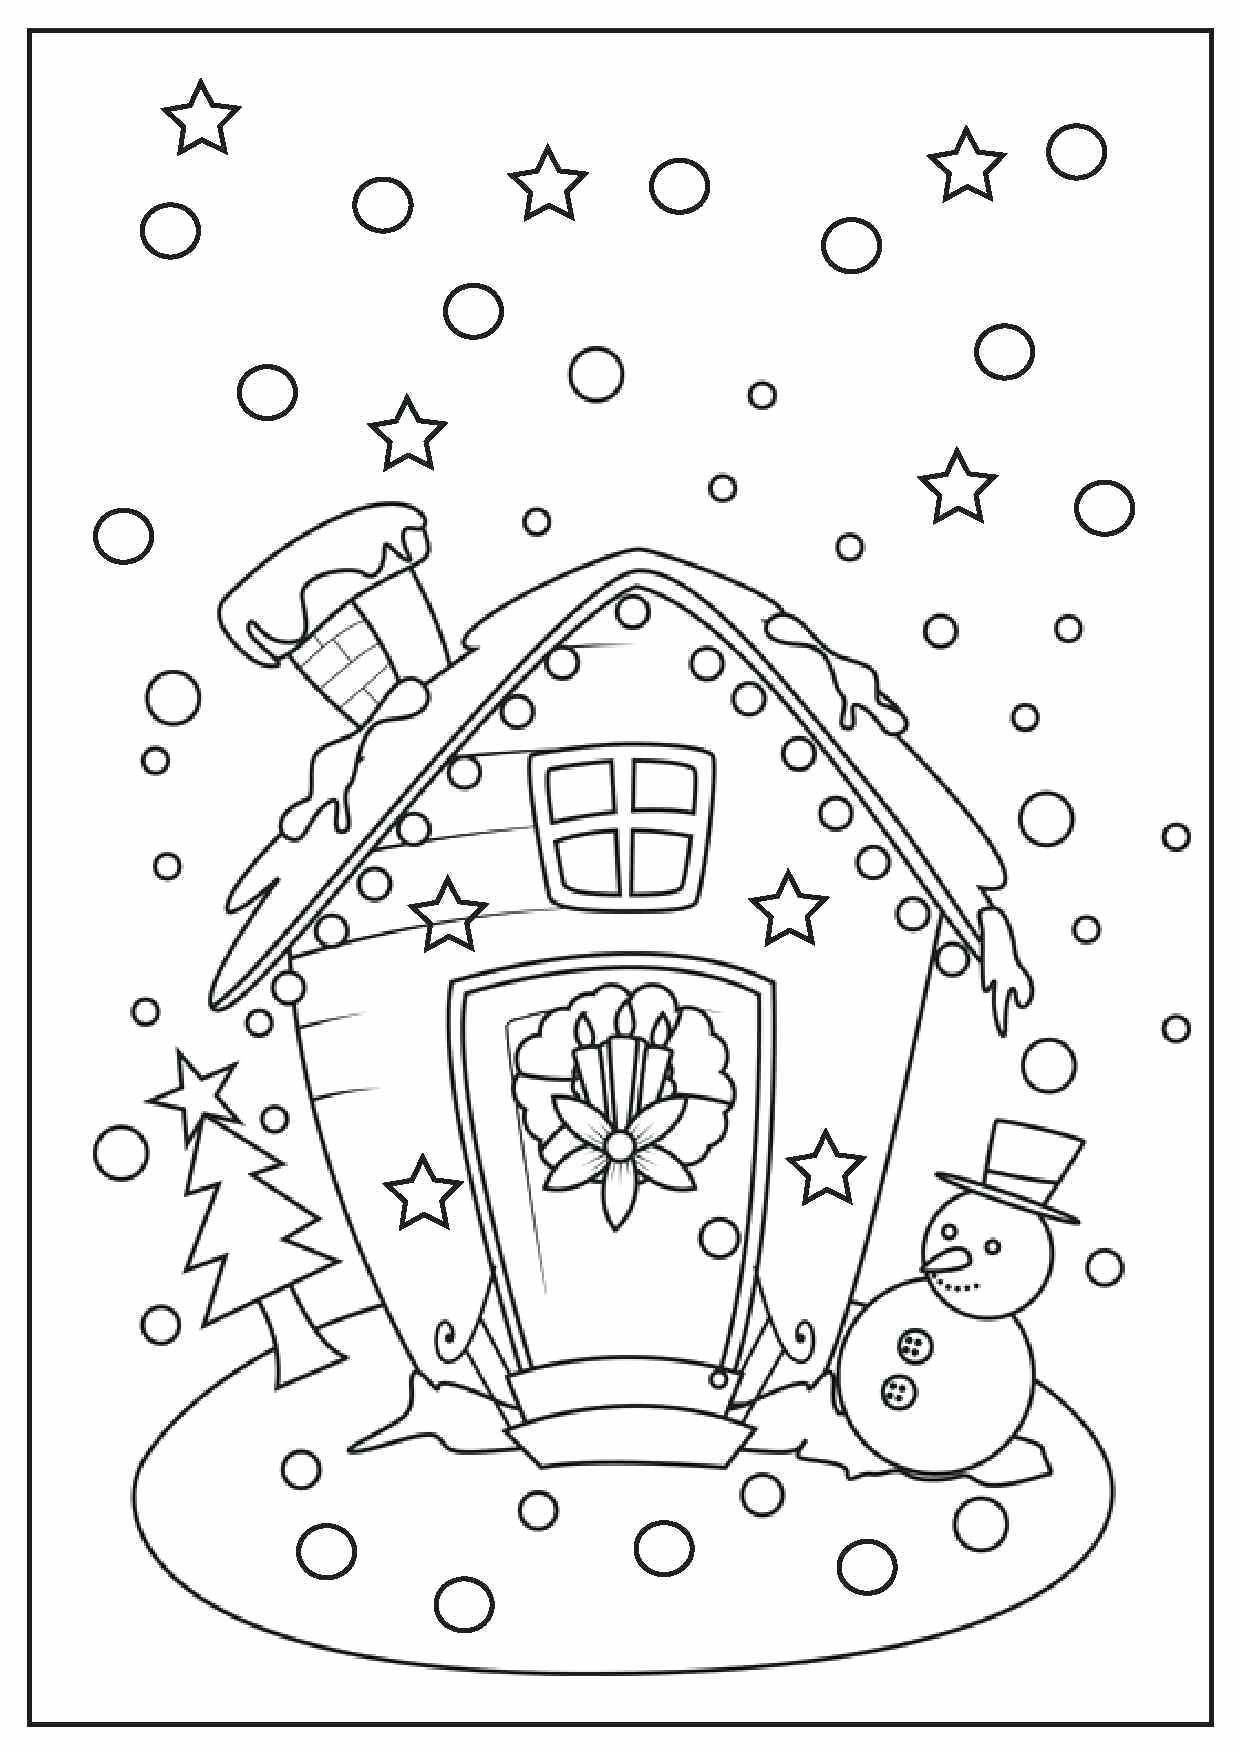 hight resolution of 3 Free Math Worksheets Second Grade 2 Subtraction Subtracting 1 Digi…    Printable christmas coloring pages